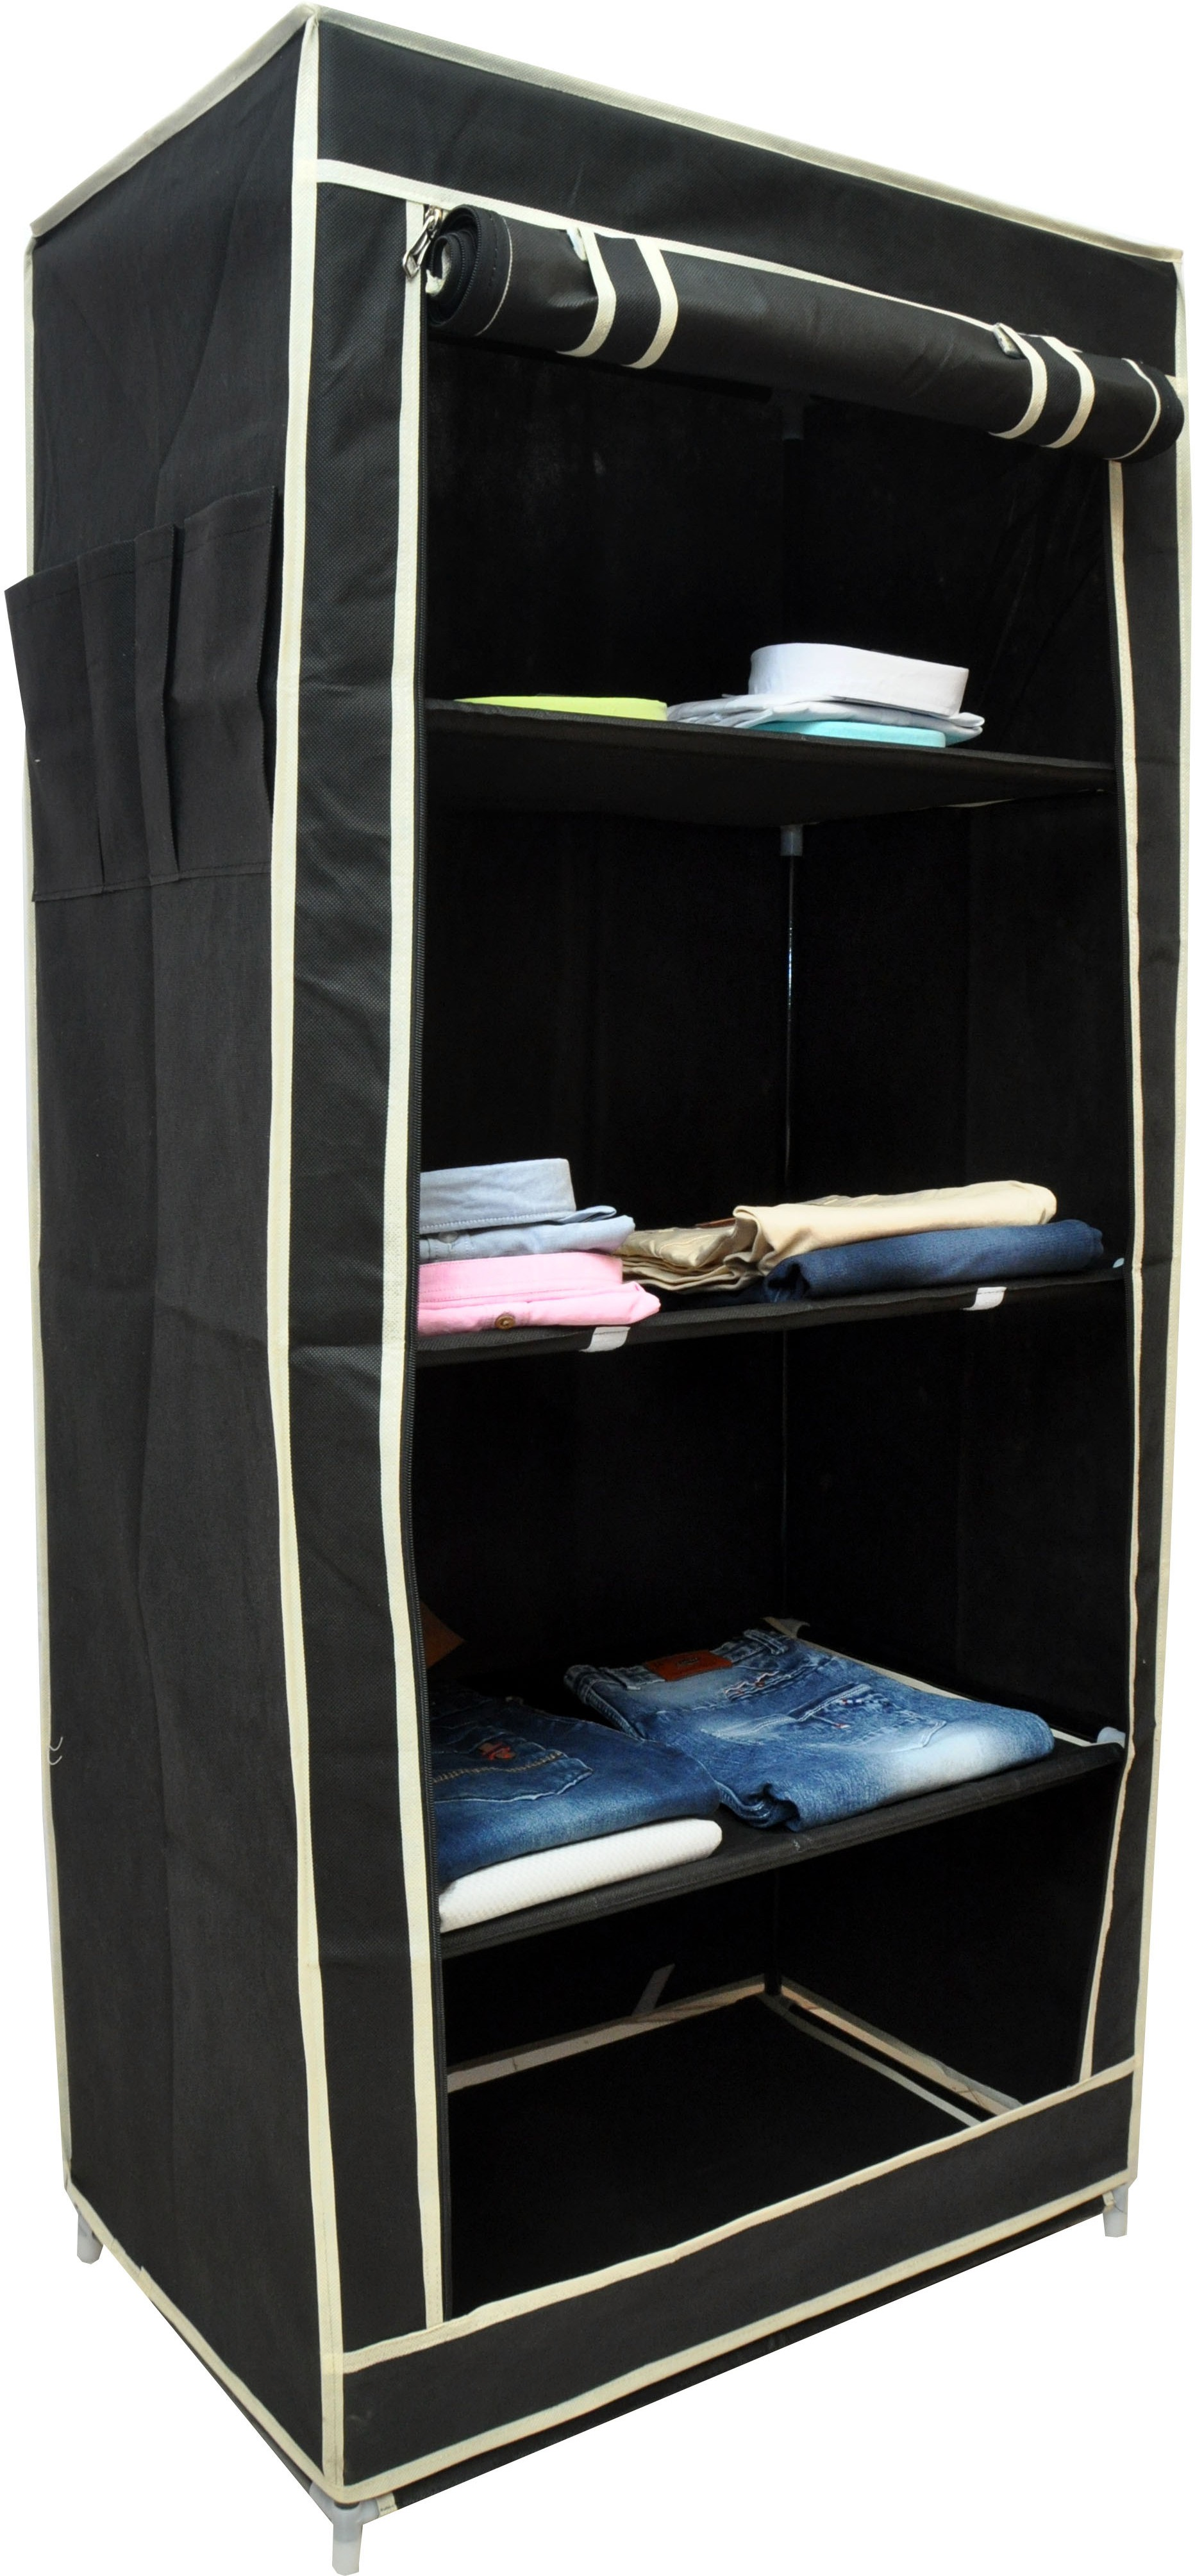 View Solace Single Row Carbon Steel Collapsible Wardrobe(Finish Color - Black) Furniture (Solace)